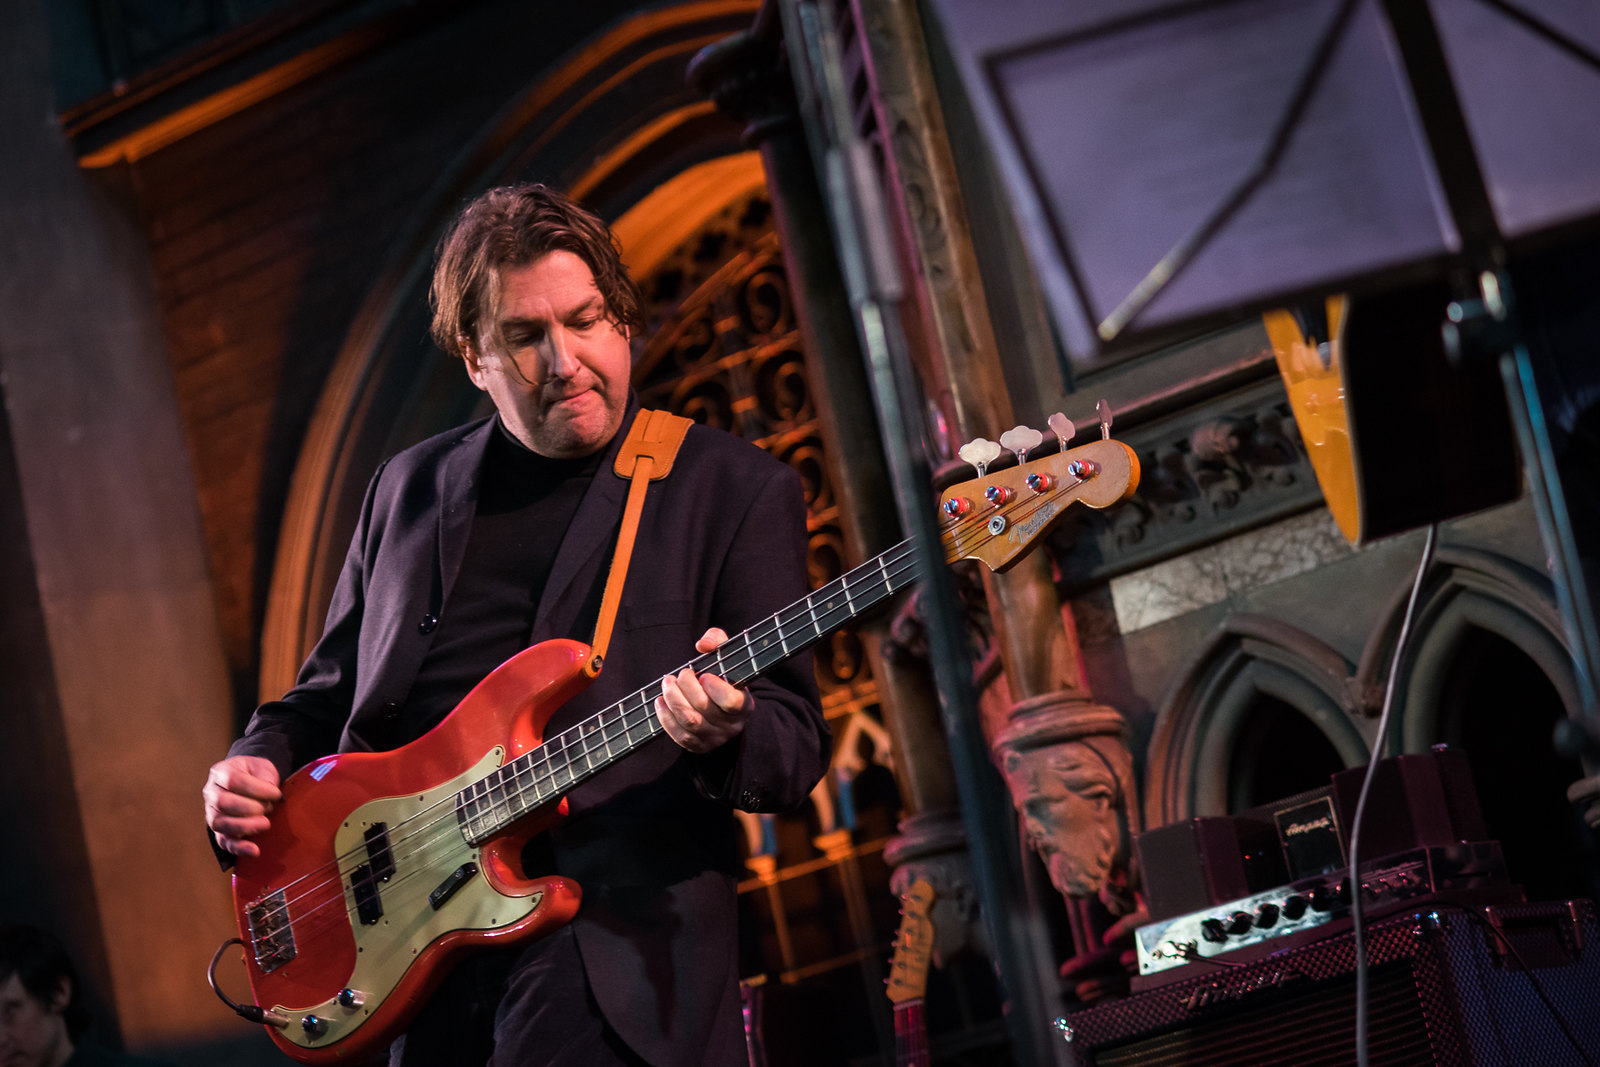 The Papas and the Mamas - Daylight Music 24th January 2015